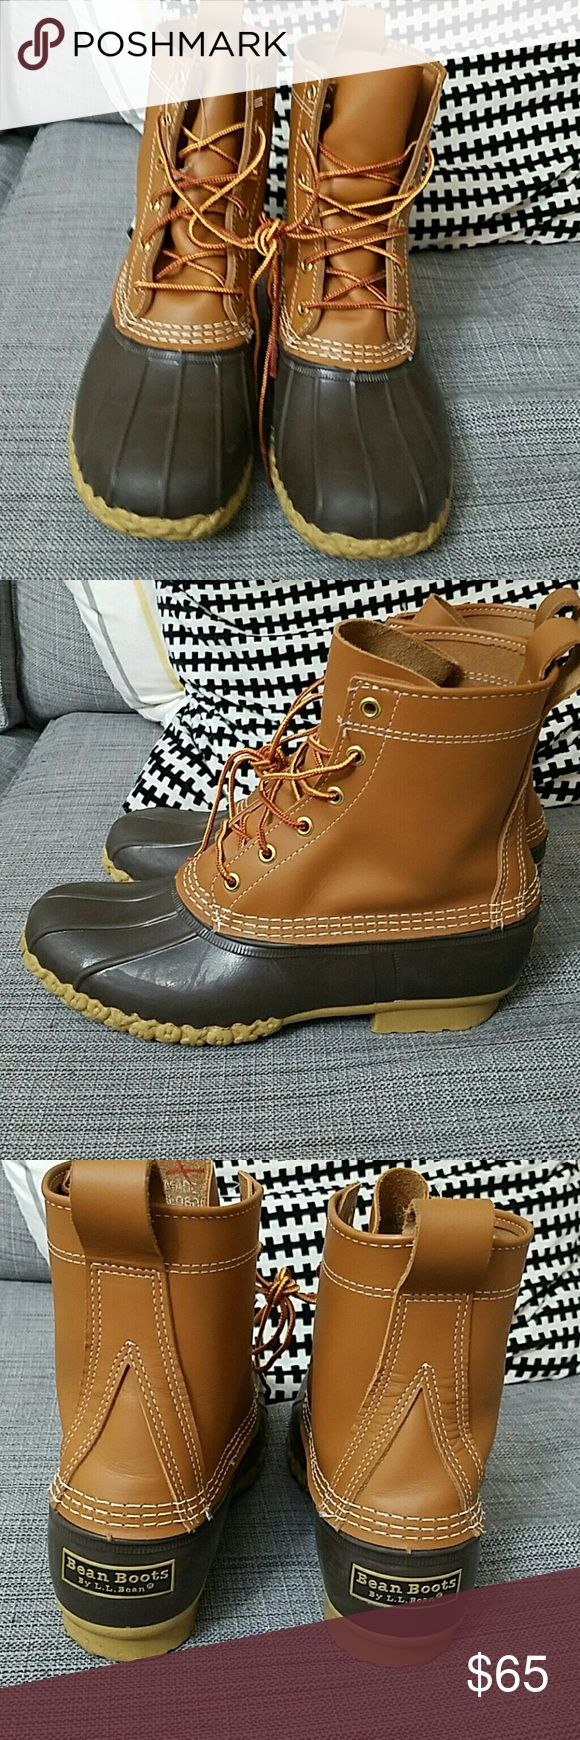 """8"""" LL Bean Boots NWOT LL Bean Boots. Nothing wrong with these at all! Too big for me. Marked as a size 8, but I would size down! Might work for a regular size 9 L.L. Bean Shoes Winter & Rain Boots"""